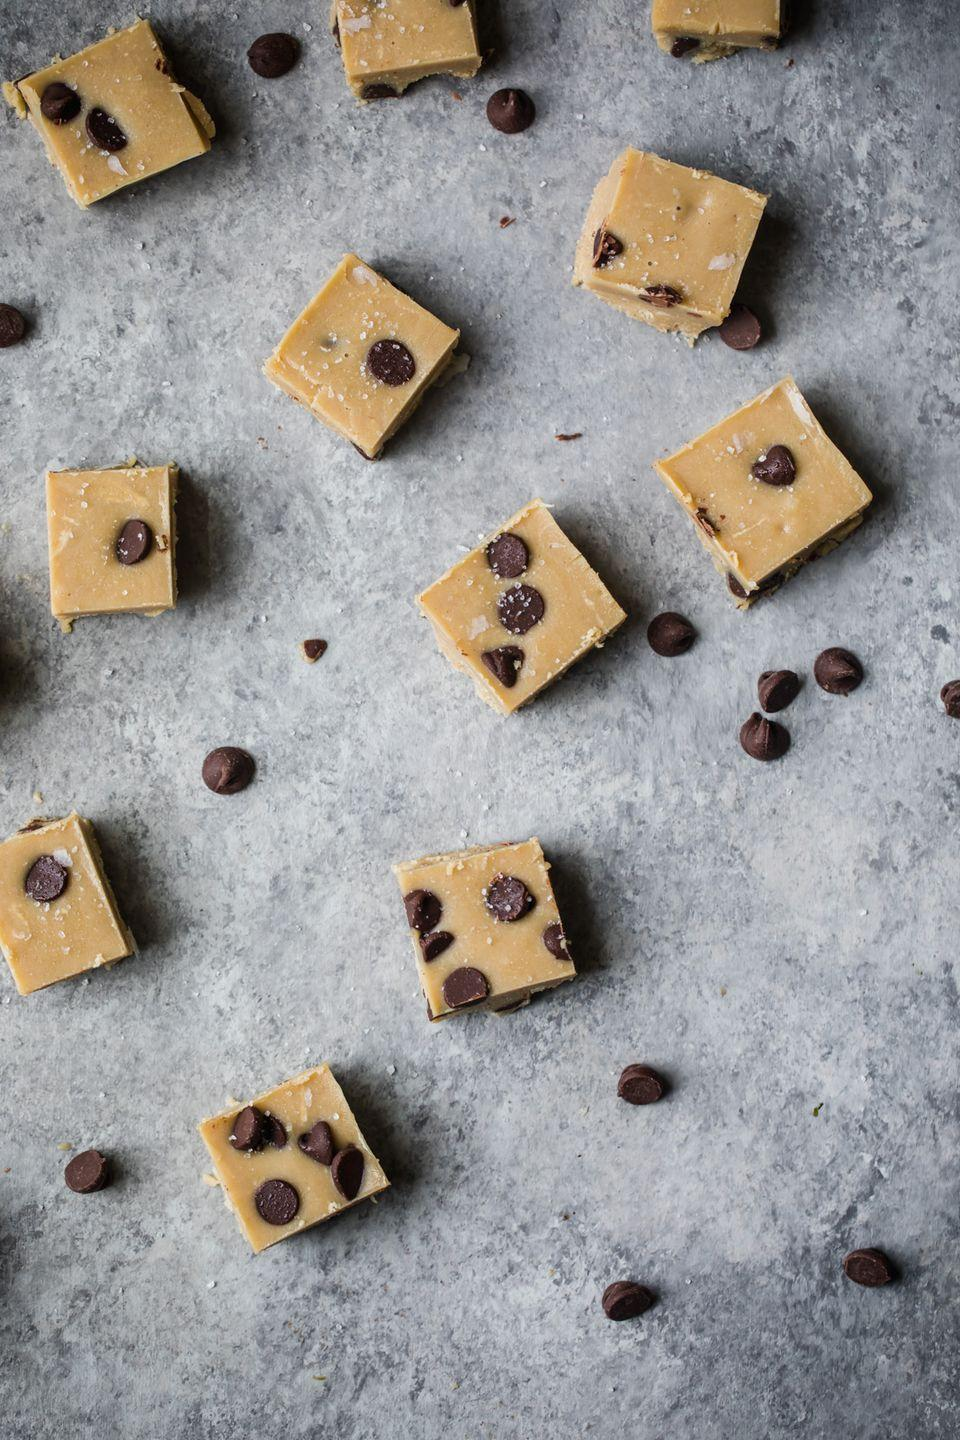 """<p>Tahini is absolutely perfect in this salty-sweet fudge. (Bonus: It's made with <em>just</em> tahini, coconut oil, maple syrup, and salt.)</p><p><a class=""""link rapid-noclick-resp"""" href=""""https://www.ambitiouskitchen.com/no-bake-salted-tahini-cookie-dough-fudge/"""" rel=""""nofollow noopener"""" target=""""_blank"""" data-ylk=""""slk:GET THE RECIPE"""">GET THE RECIPE</a></p><p><em>Per serving: 162 calories, 14 g fat (5.5 g saturated), 8.8 g carbs, 4.7 g sugar, 11.9 g fiber, 2.7 g protein</em></p>"""